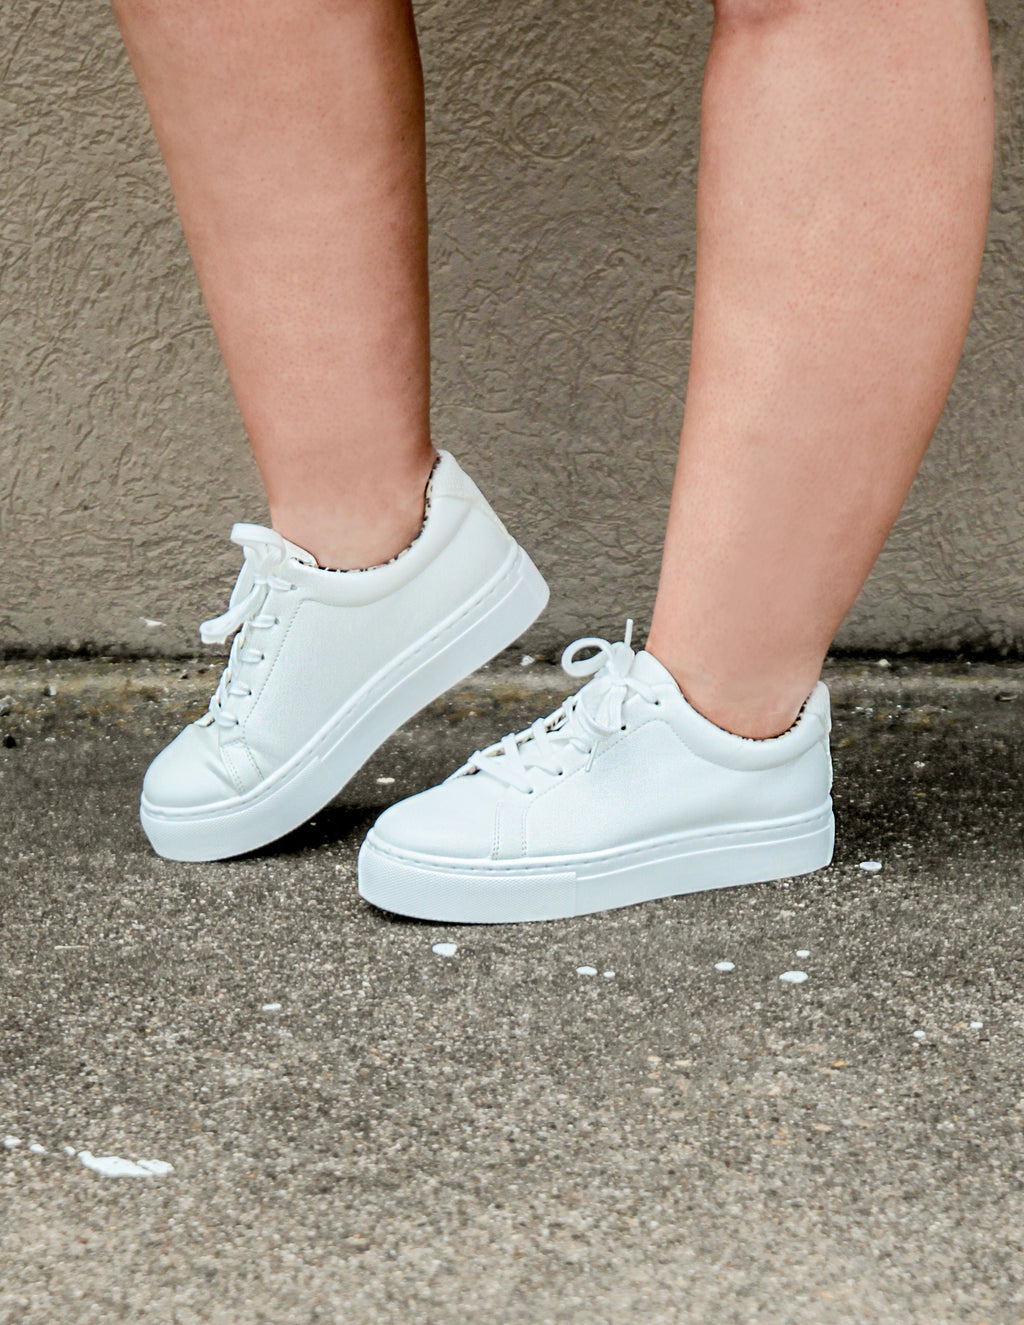 Sly Steps Sneakers